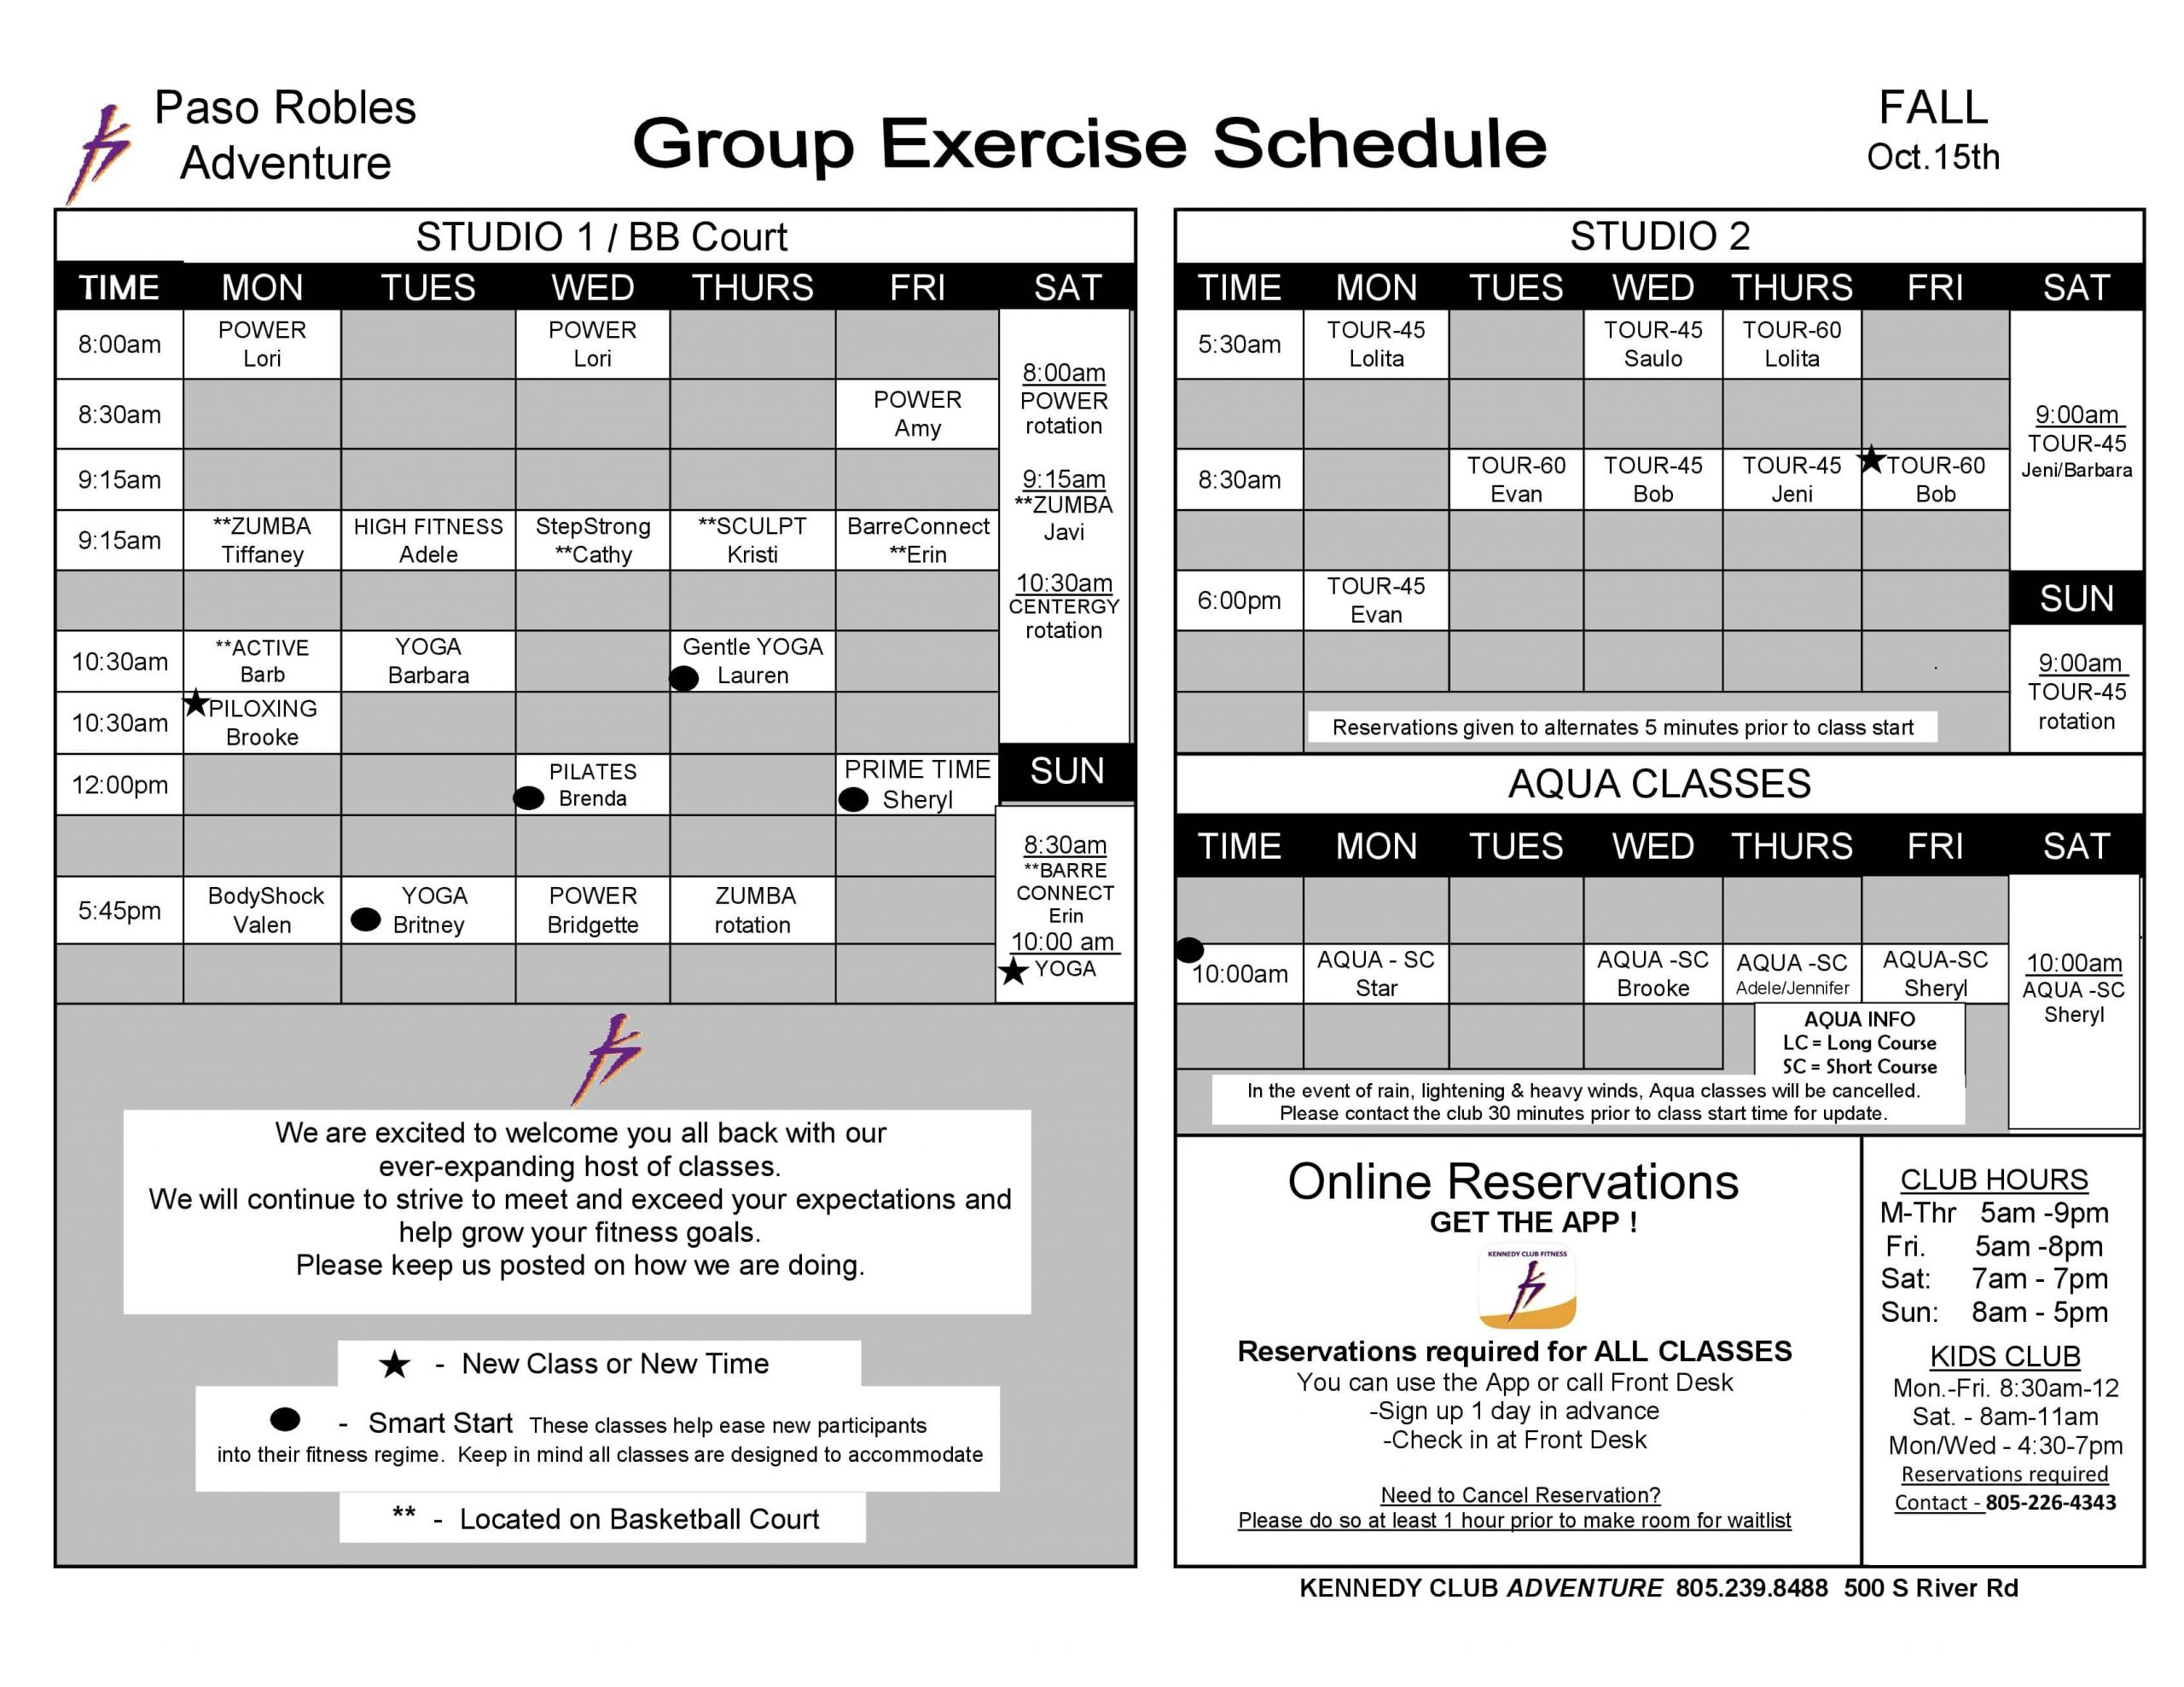 Kennedy Club Fitness Paso Robles Group Exercise Schedule